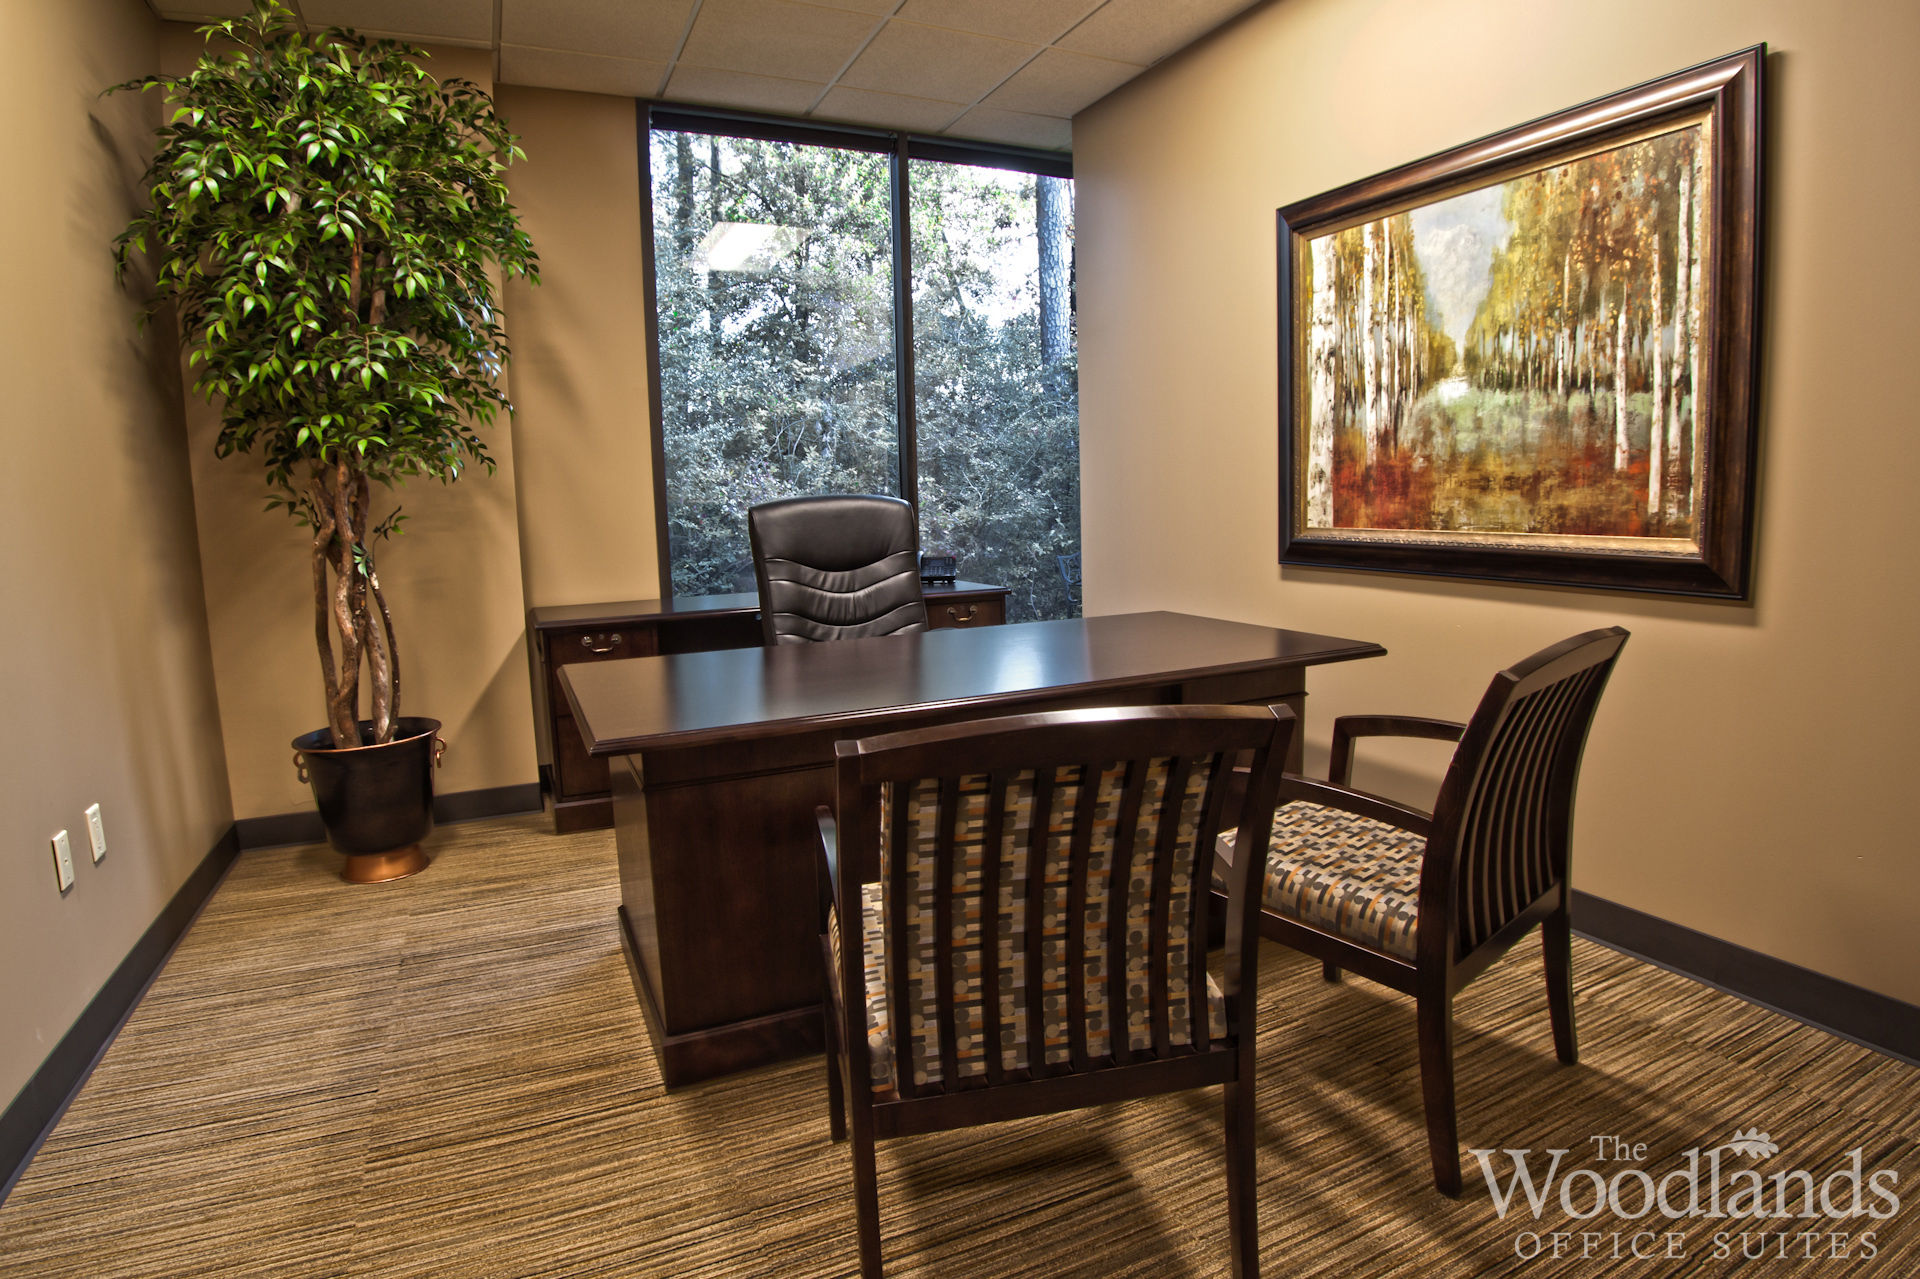 Walkout Basement Ideas Office Space - The Woodlands Office Suites